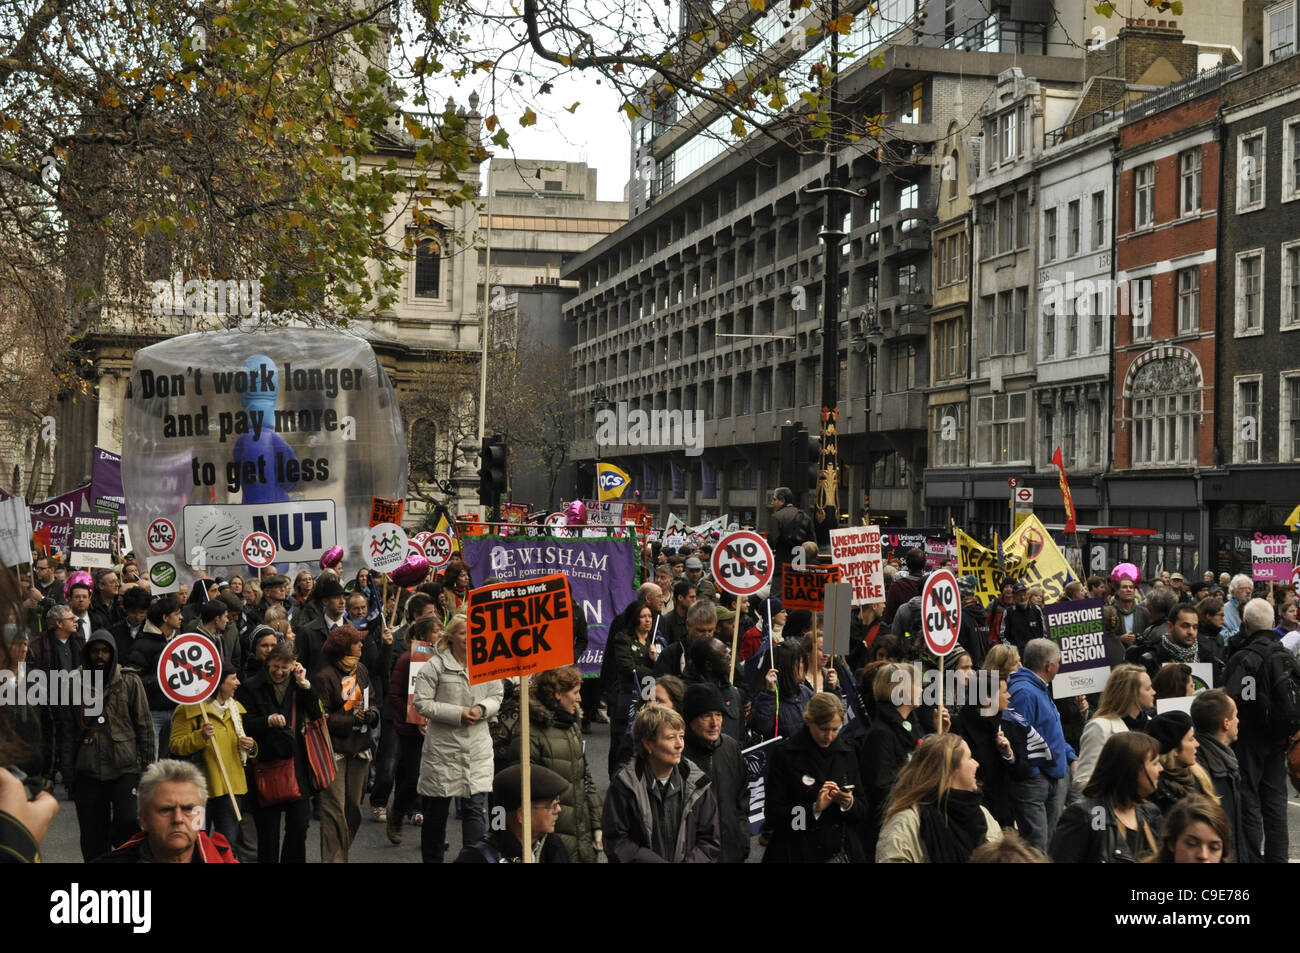 London, UK, 30/11/2011 Strikers march through central London carrying an inflatable mascot in protest against public - Stock Image